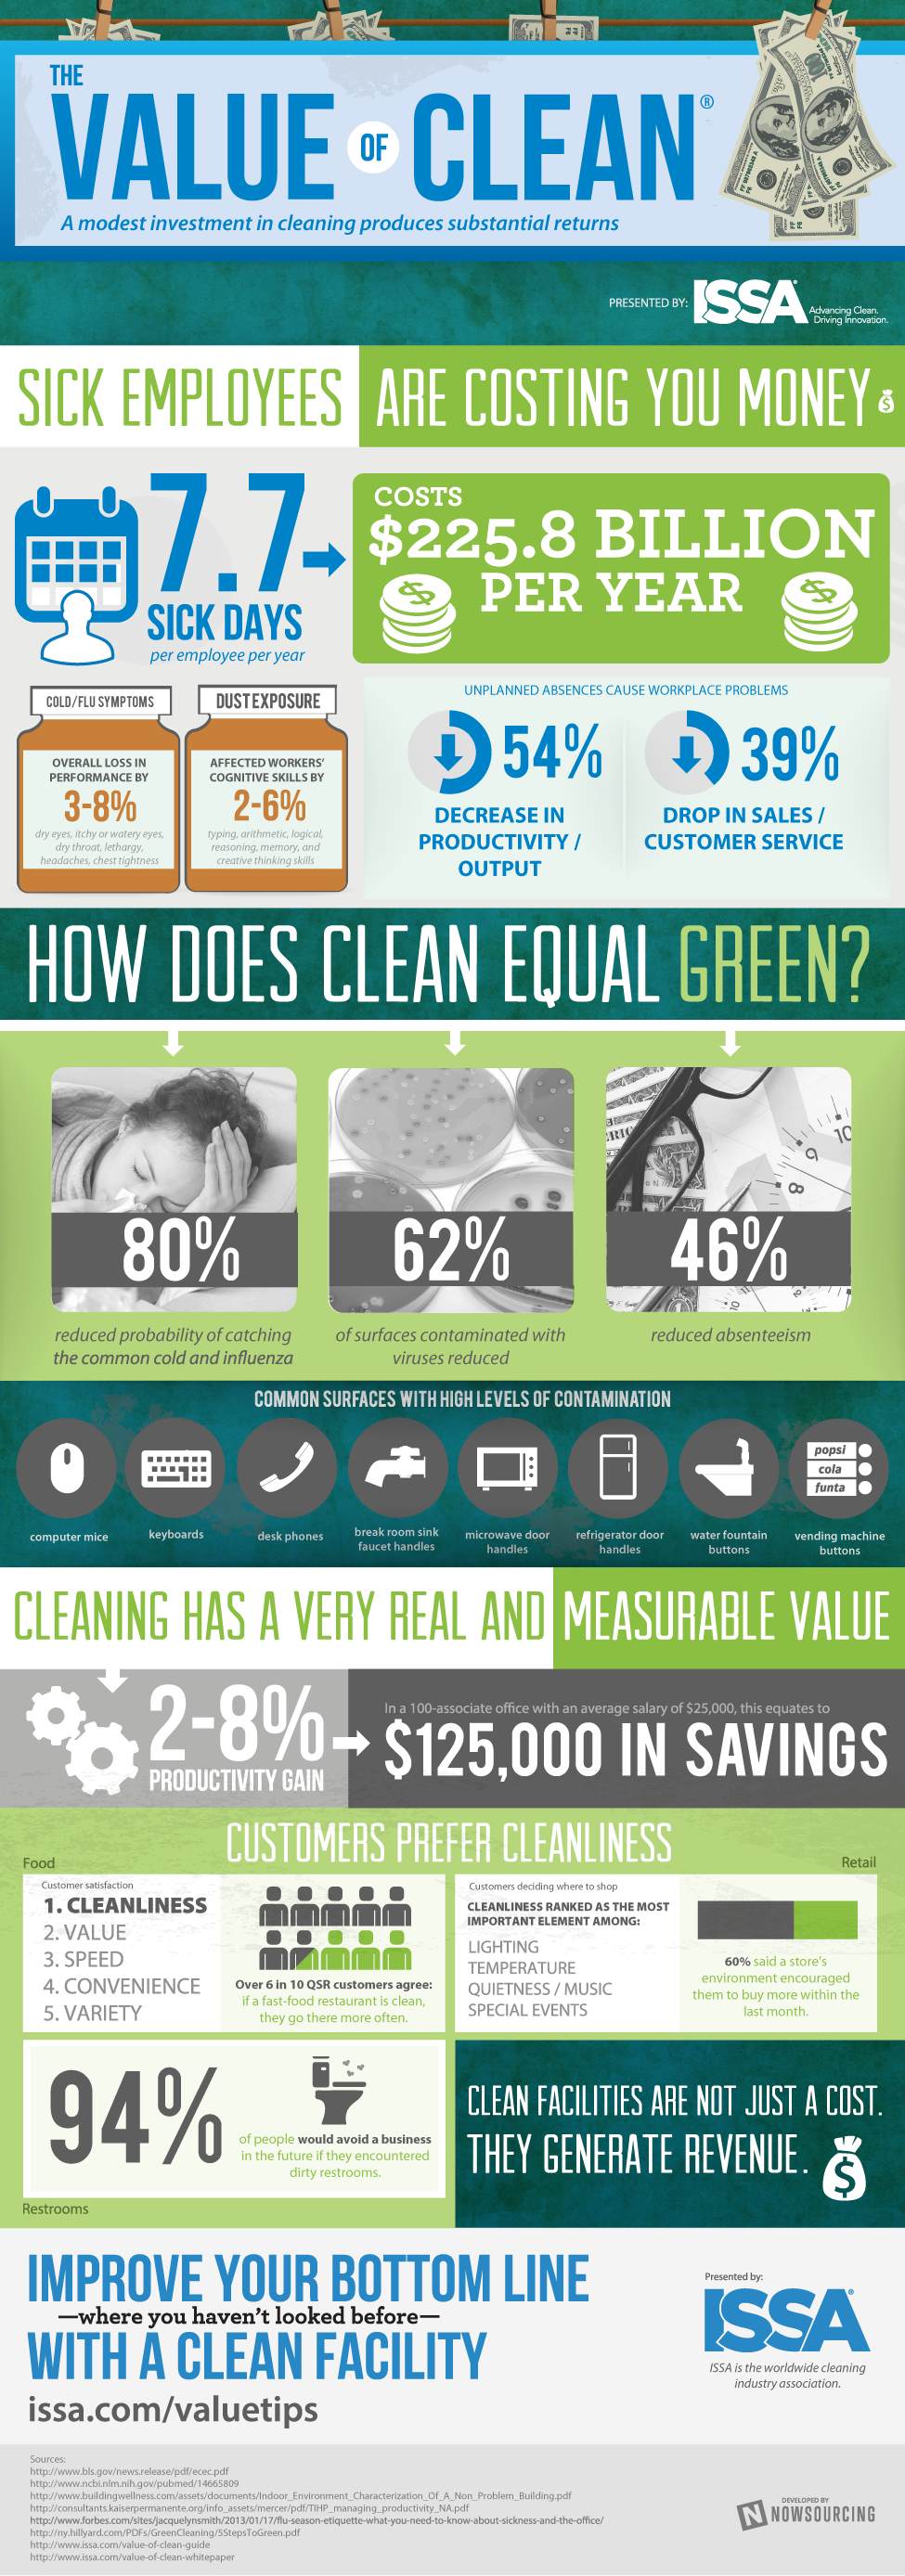 The Value of Clean